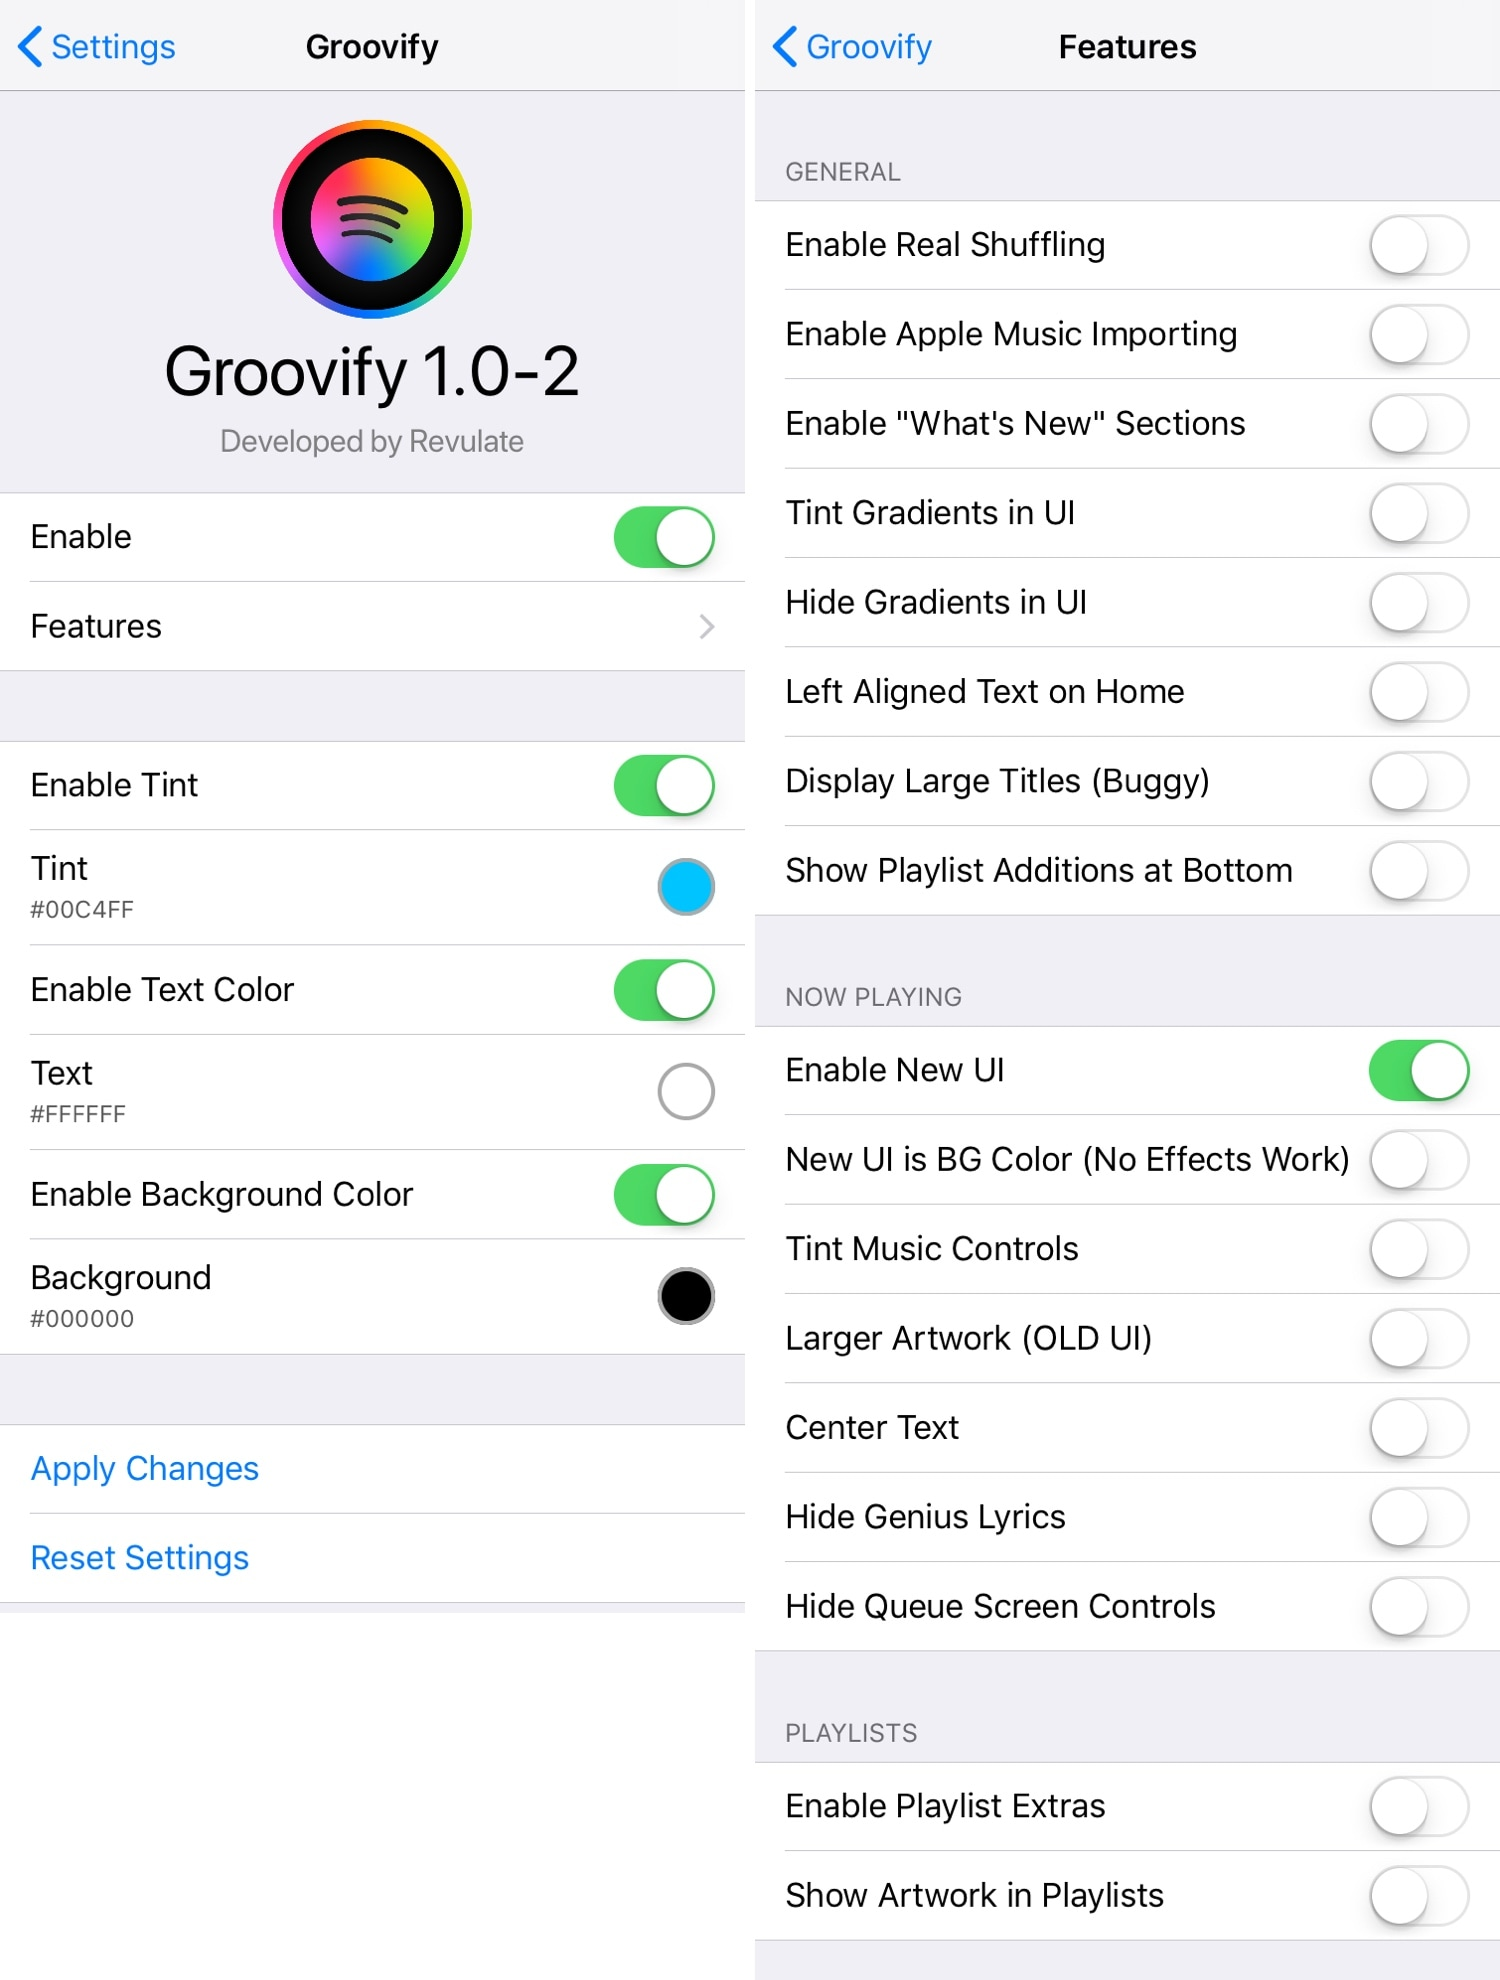 Groovify lets you customize the Spotify Music app without